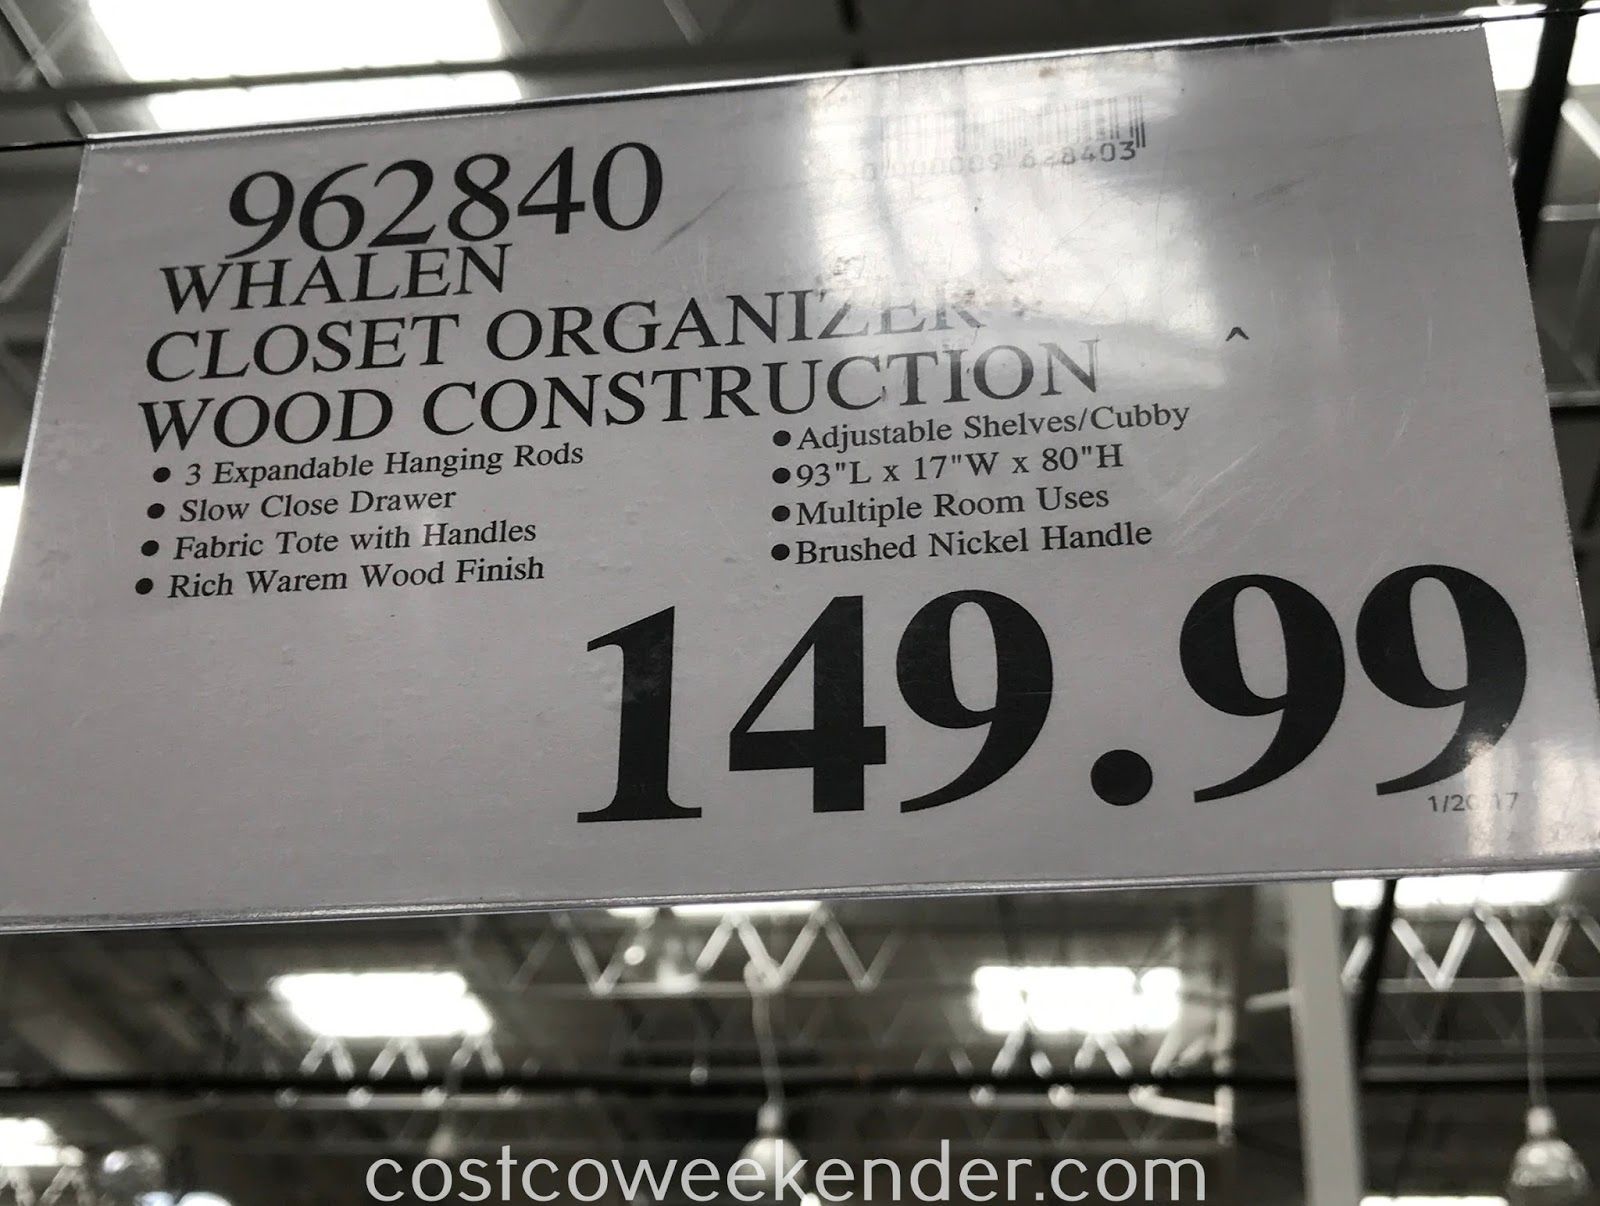 Deal for the Whalen Closet Organizer at Costco